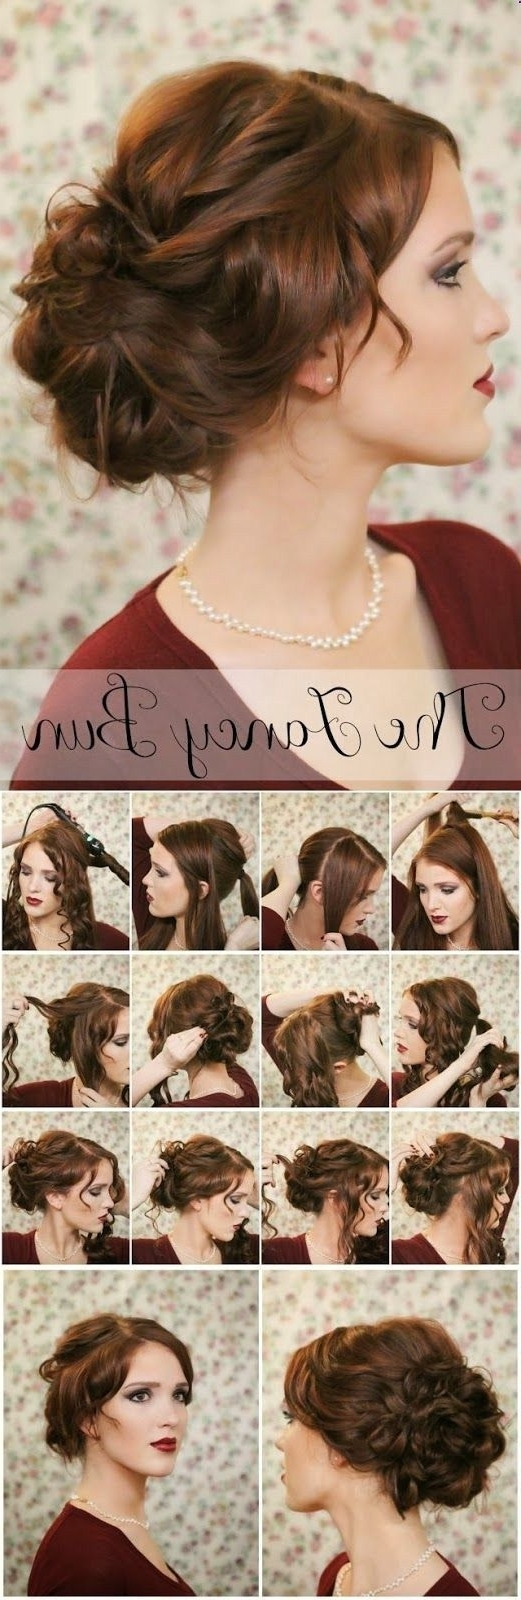 16 Pretty And Chic Updos For Medium Length Hair – Pretty Designs In Well Known Simple Wedding Hairstyles For Shoulder Length Hair (View 4 of 15)